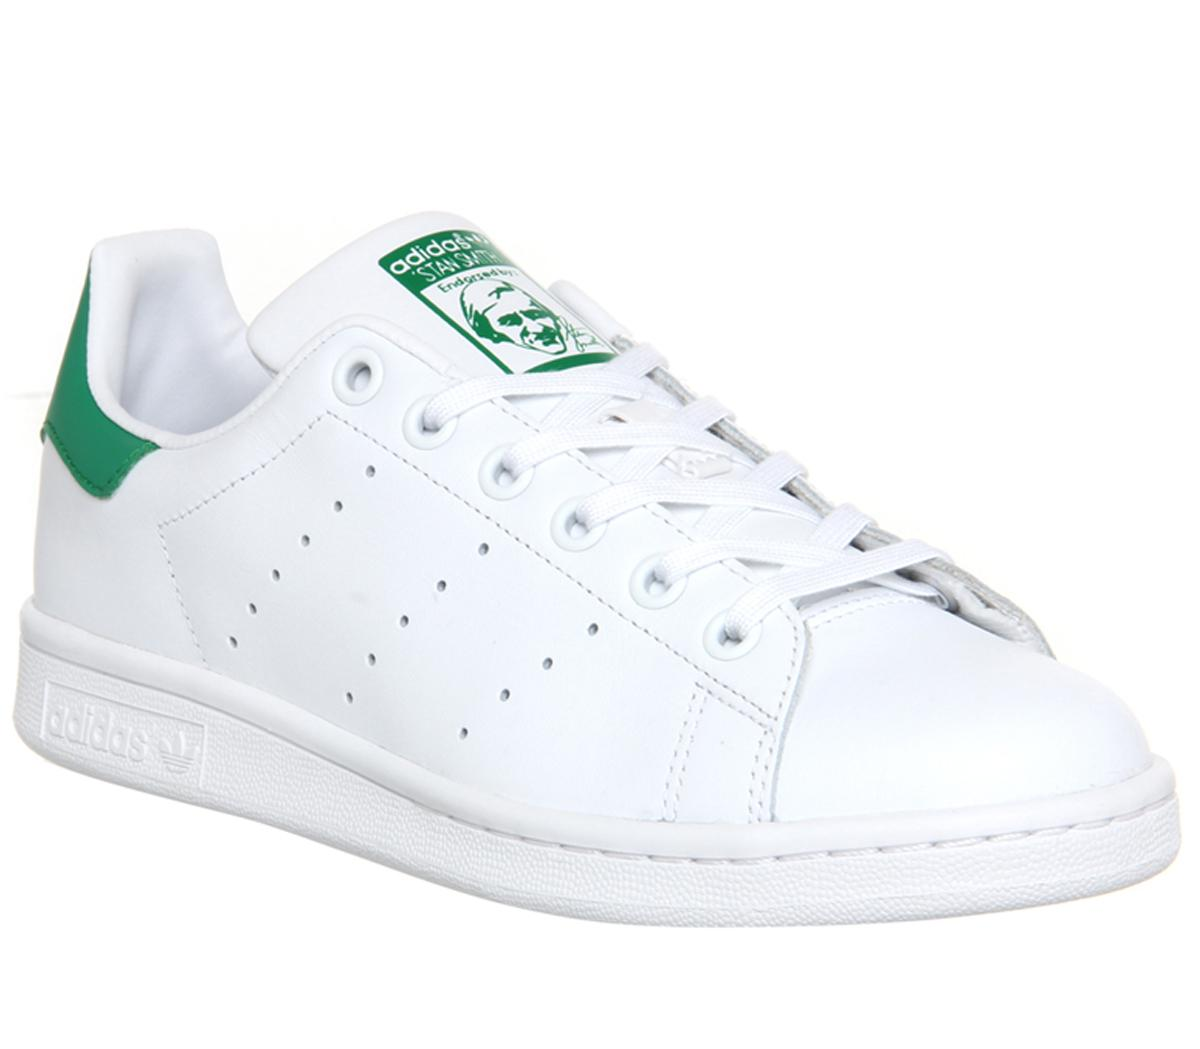 blanco como la nieve Planta de semillero Injusticia  adidas Stan Smith Trainers Core White Green - Unisex Sports